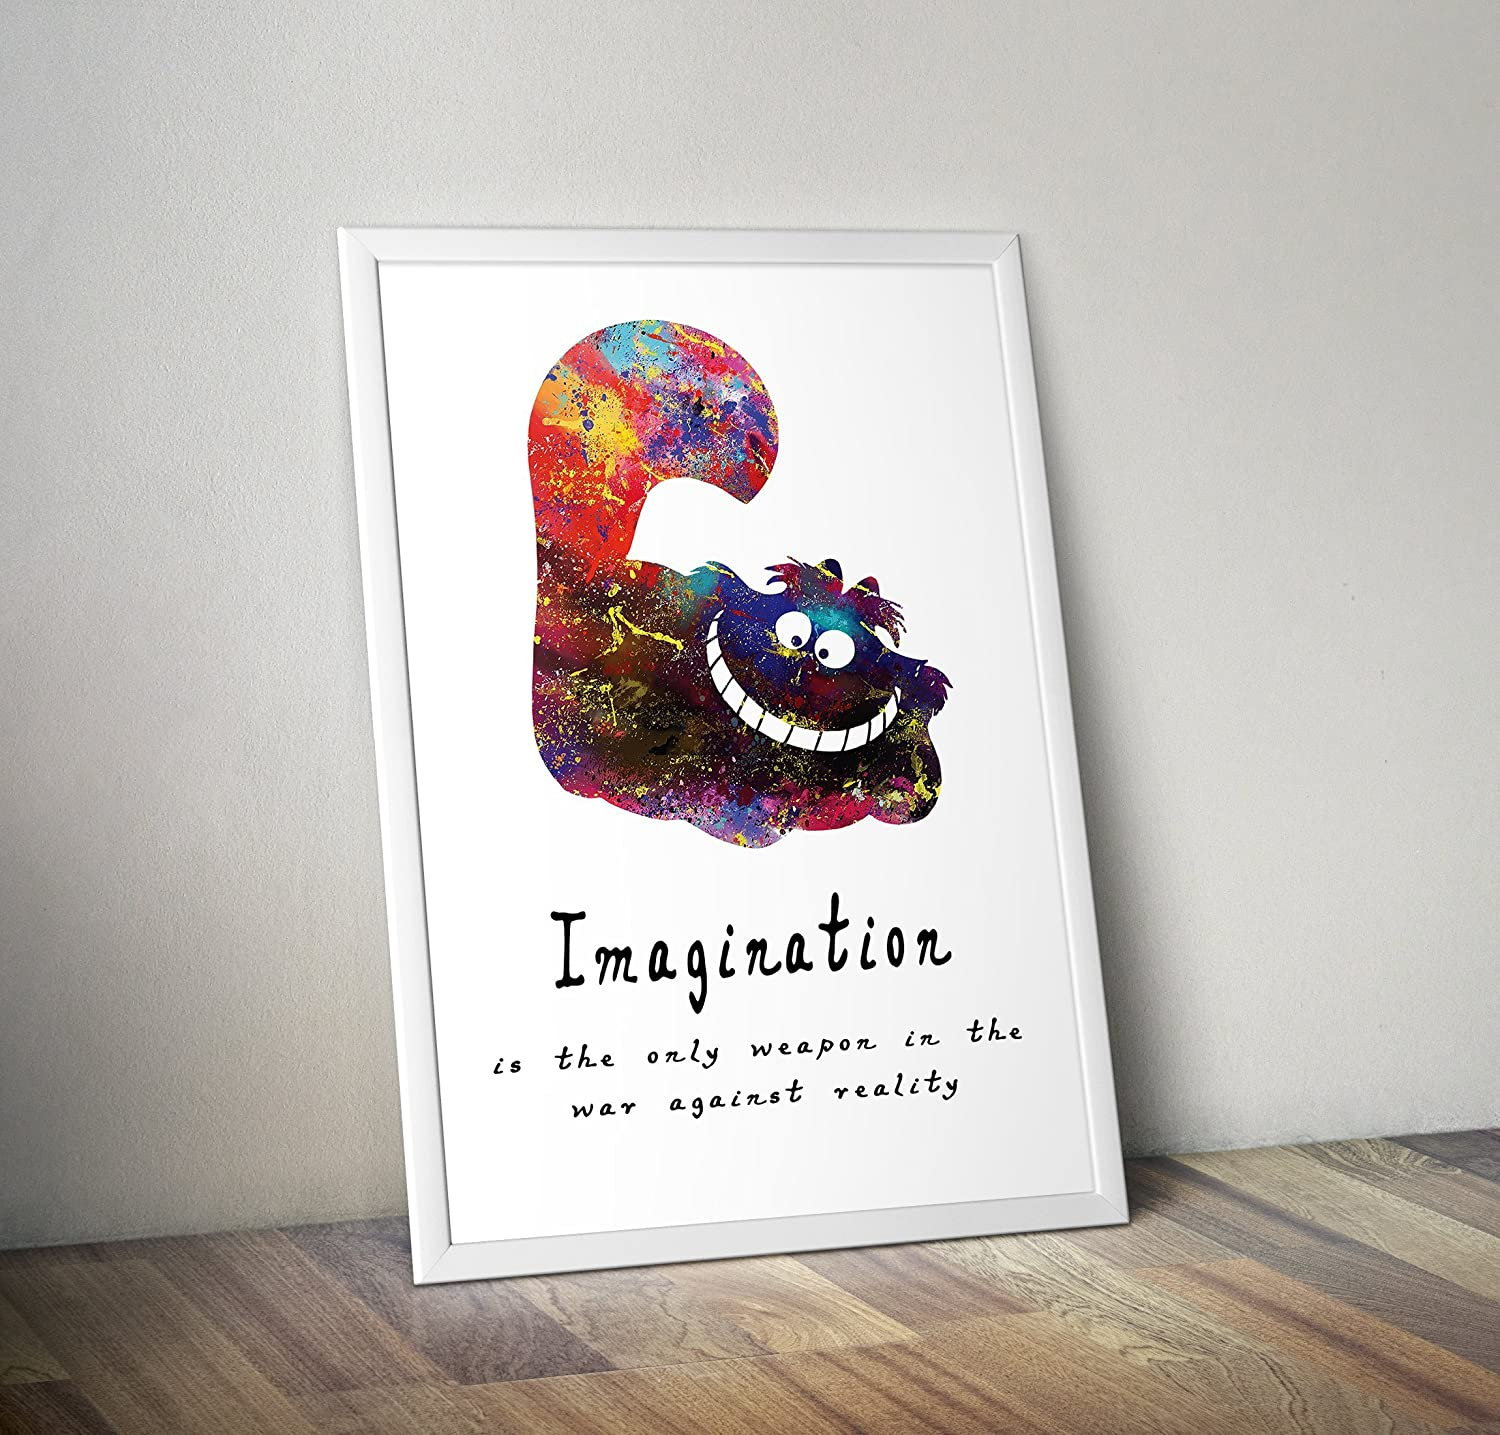 Frame Not Included Quote Alice in wonderland Inspired Watercolour Poster Alternative TV//Movie Prints in Various Sizes